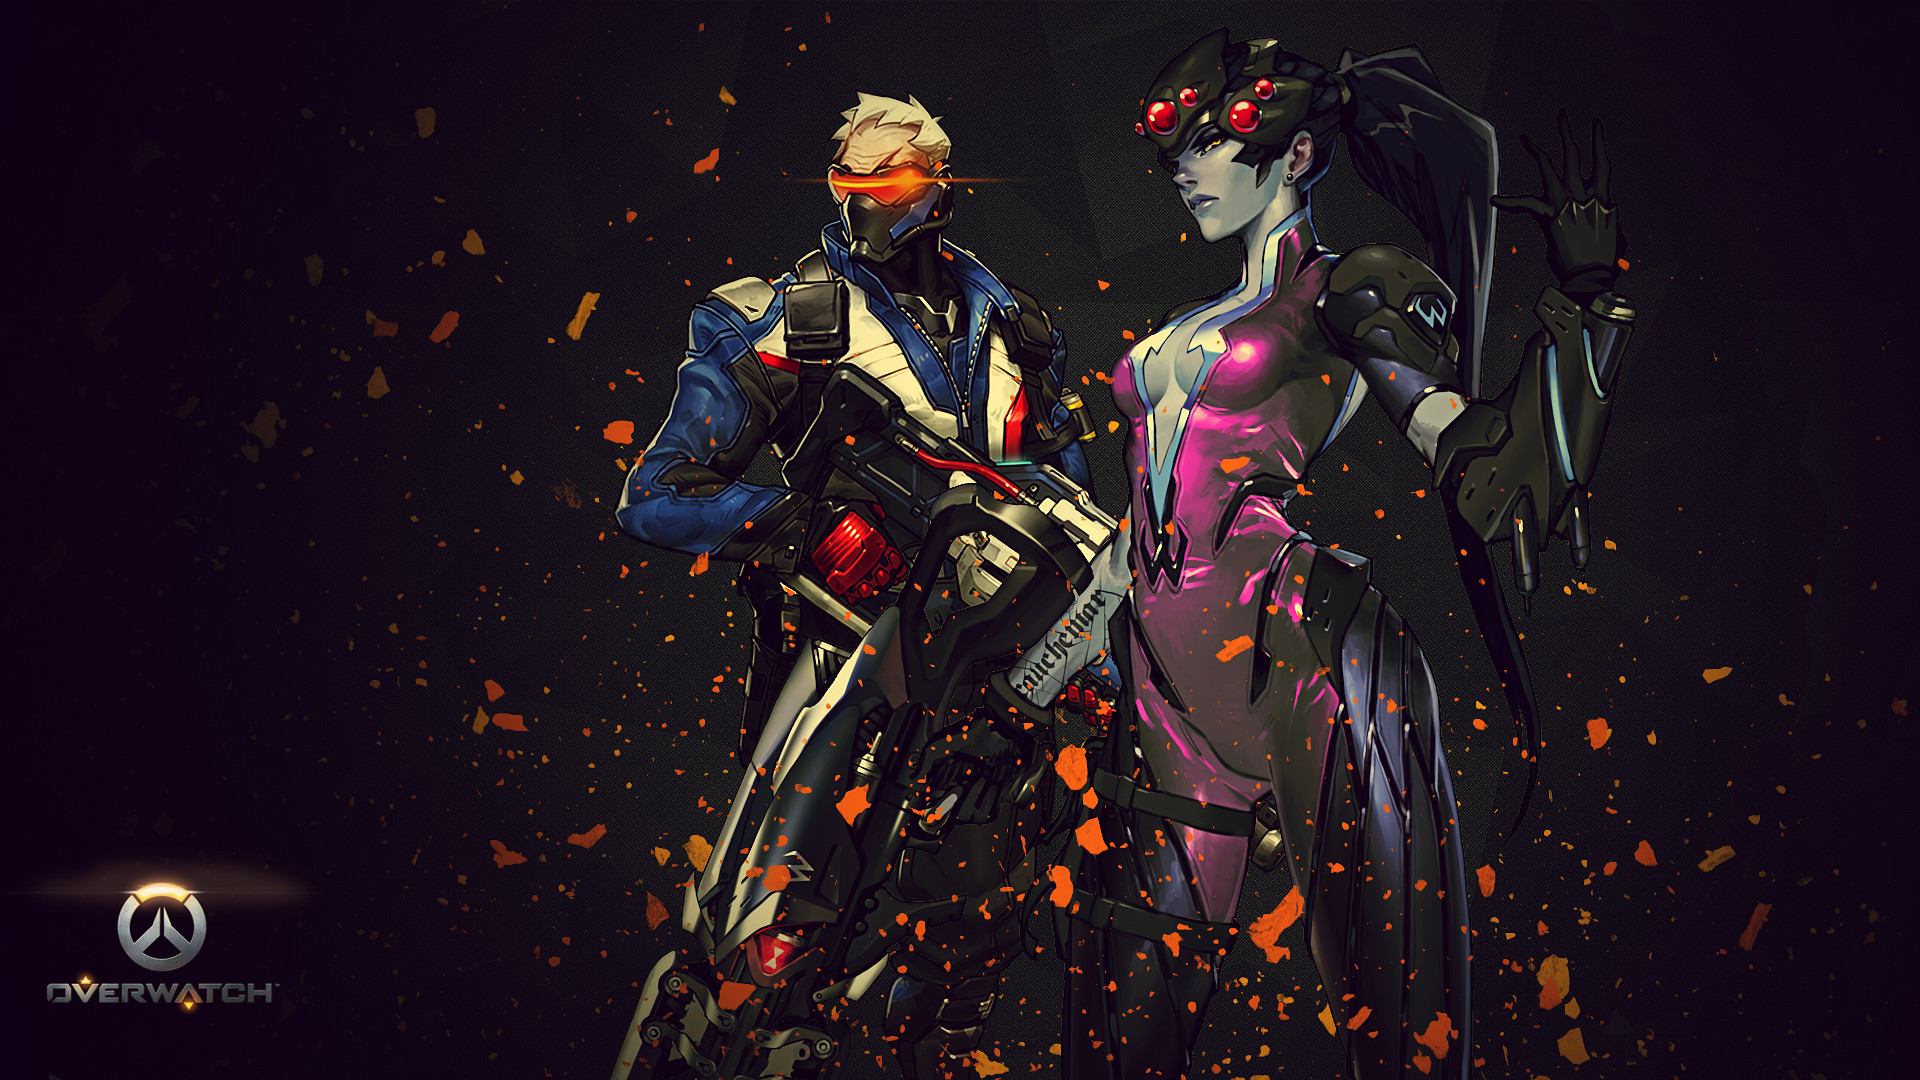 1920x1080 Video Game - Overwatch Soldier: 76 (Overwatch) Widowmaker (Overwatch)  Wallpaper